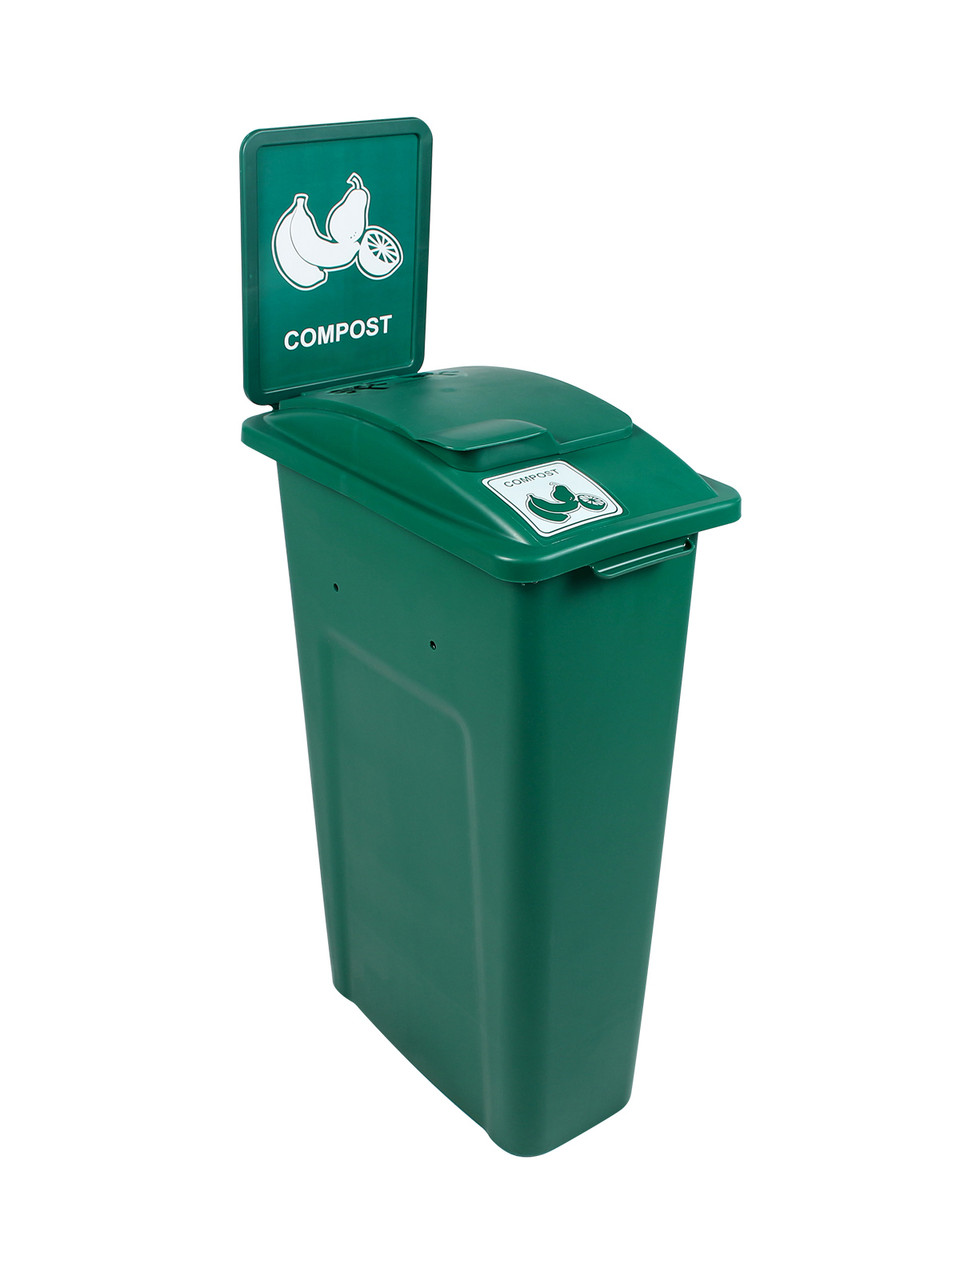 23 Gallon Green Skinny Simple Sort Compost Bin with Sign (Compost, Vented Lift Top)